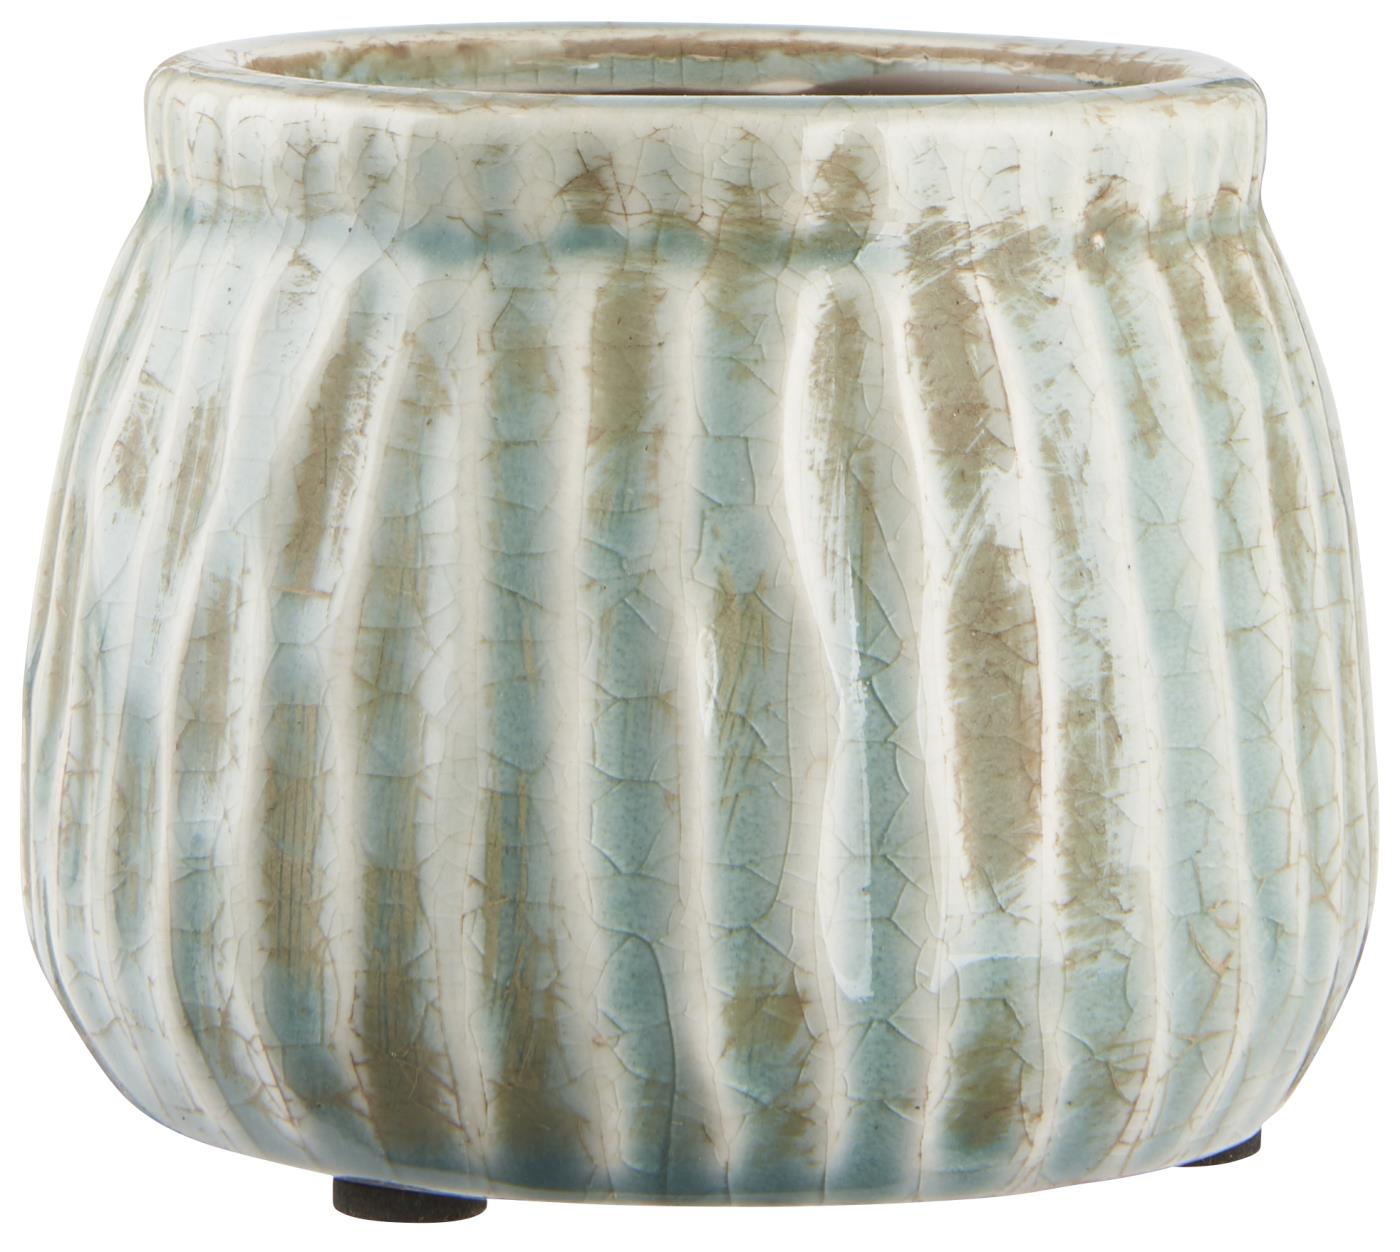 Green Ribbed Crackle Glaze Plant Pot